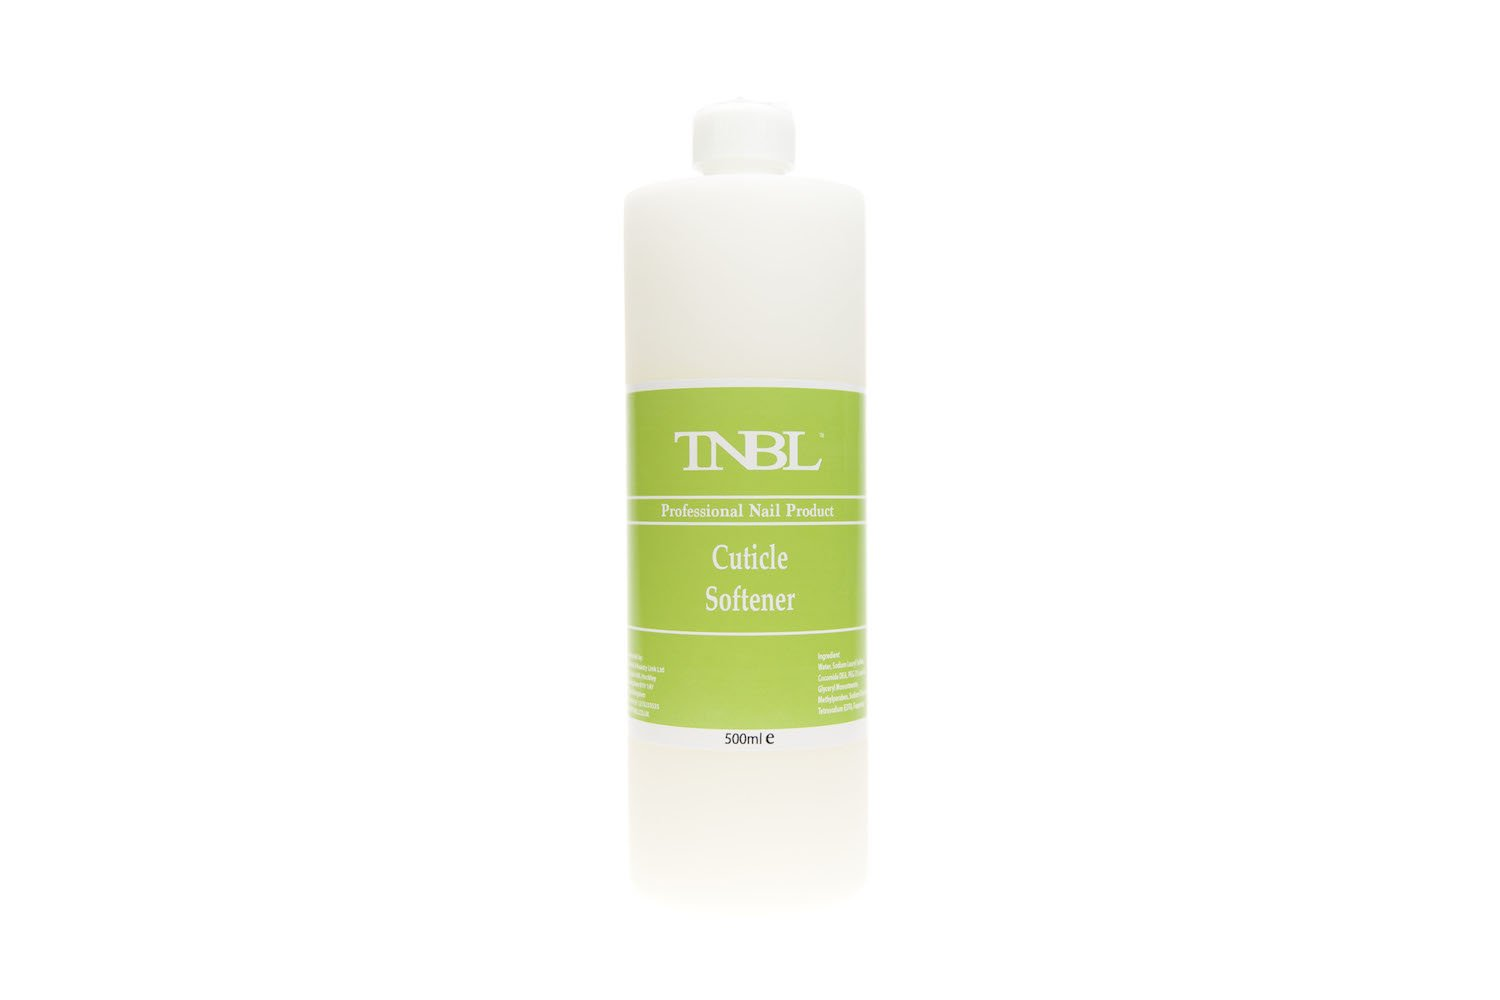 TNBL Cuticle Softener & Remover - 500ml